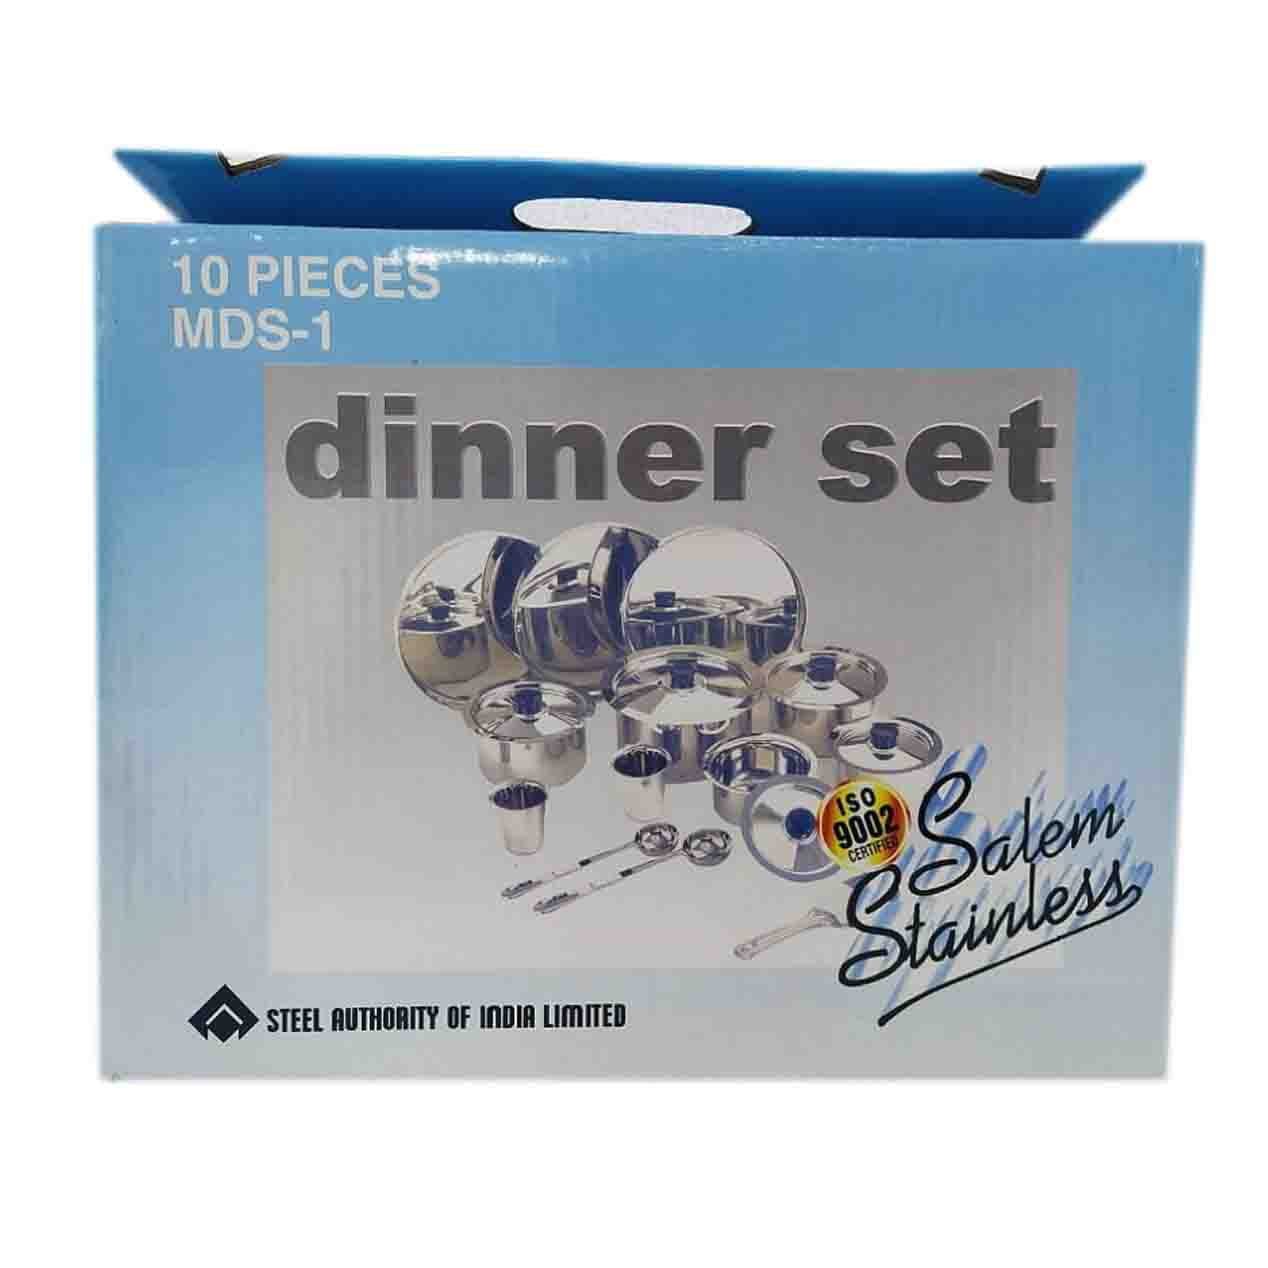 SAIL SALEM 10 Pc Dinner Set (Tope Model)